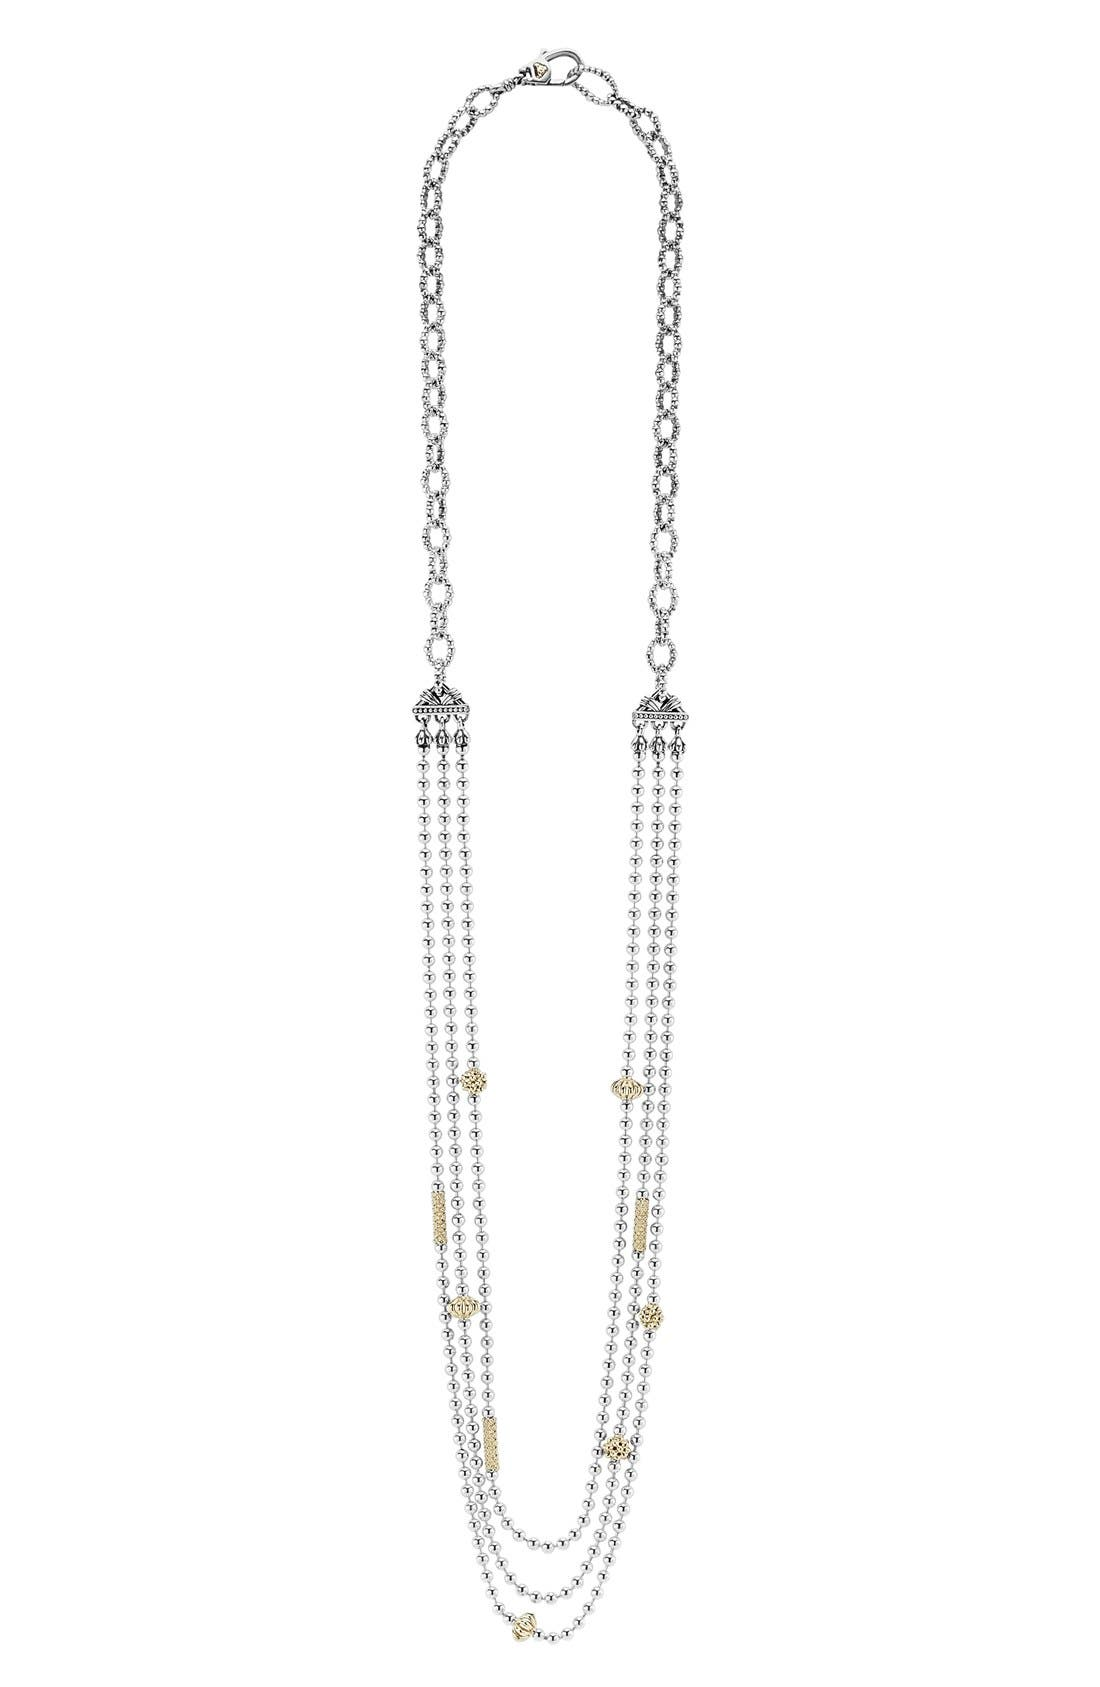 'Caviar Icon' Multistrand Necklace,                         Main,                         color, SILVER/ GOLD